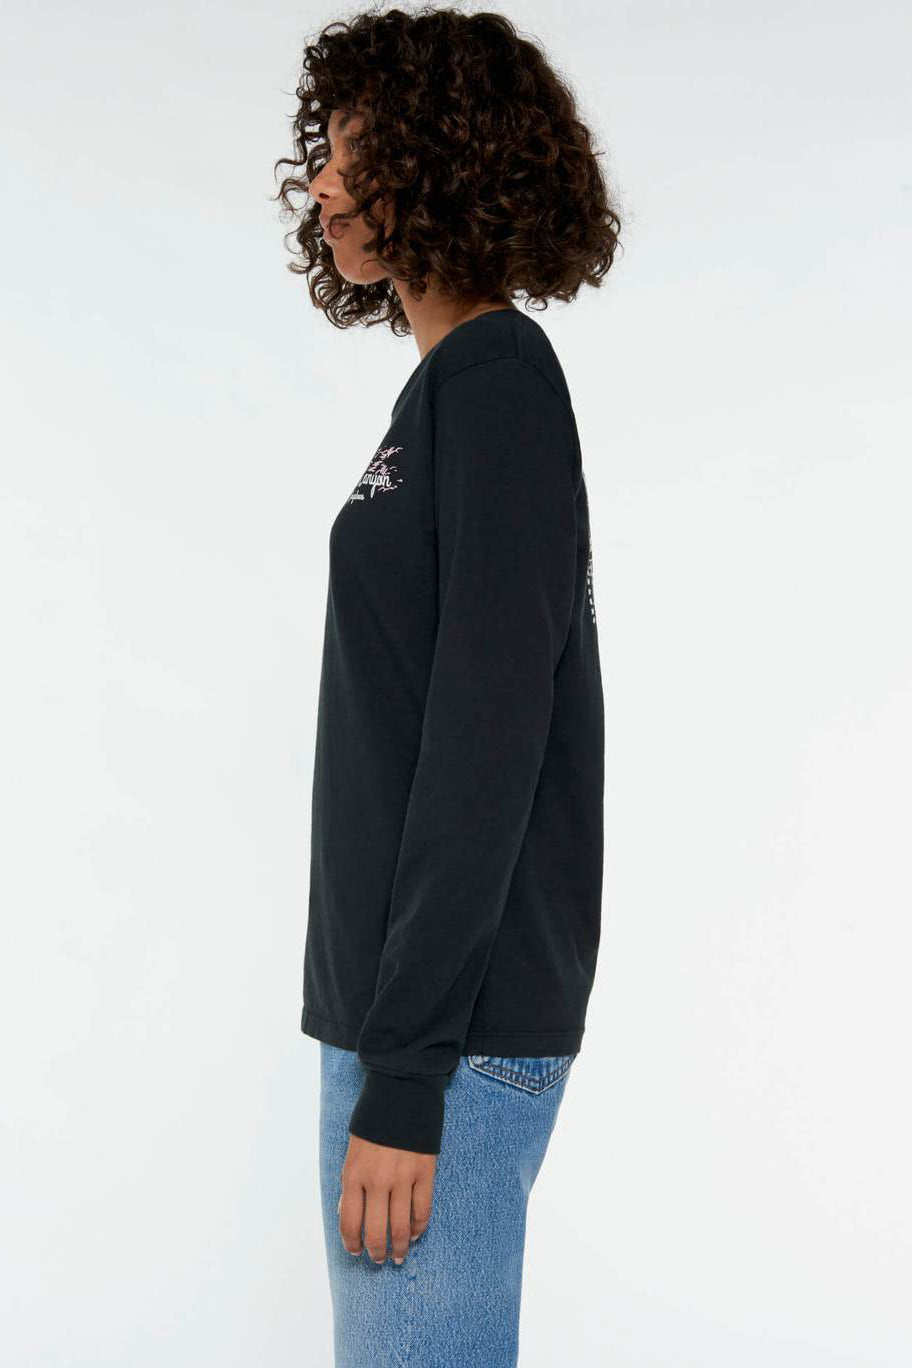 RE/DONE 90s Long Sleeve Palm Canyon Tee in Washed Black